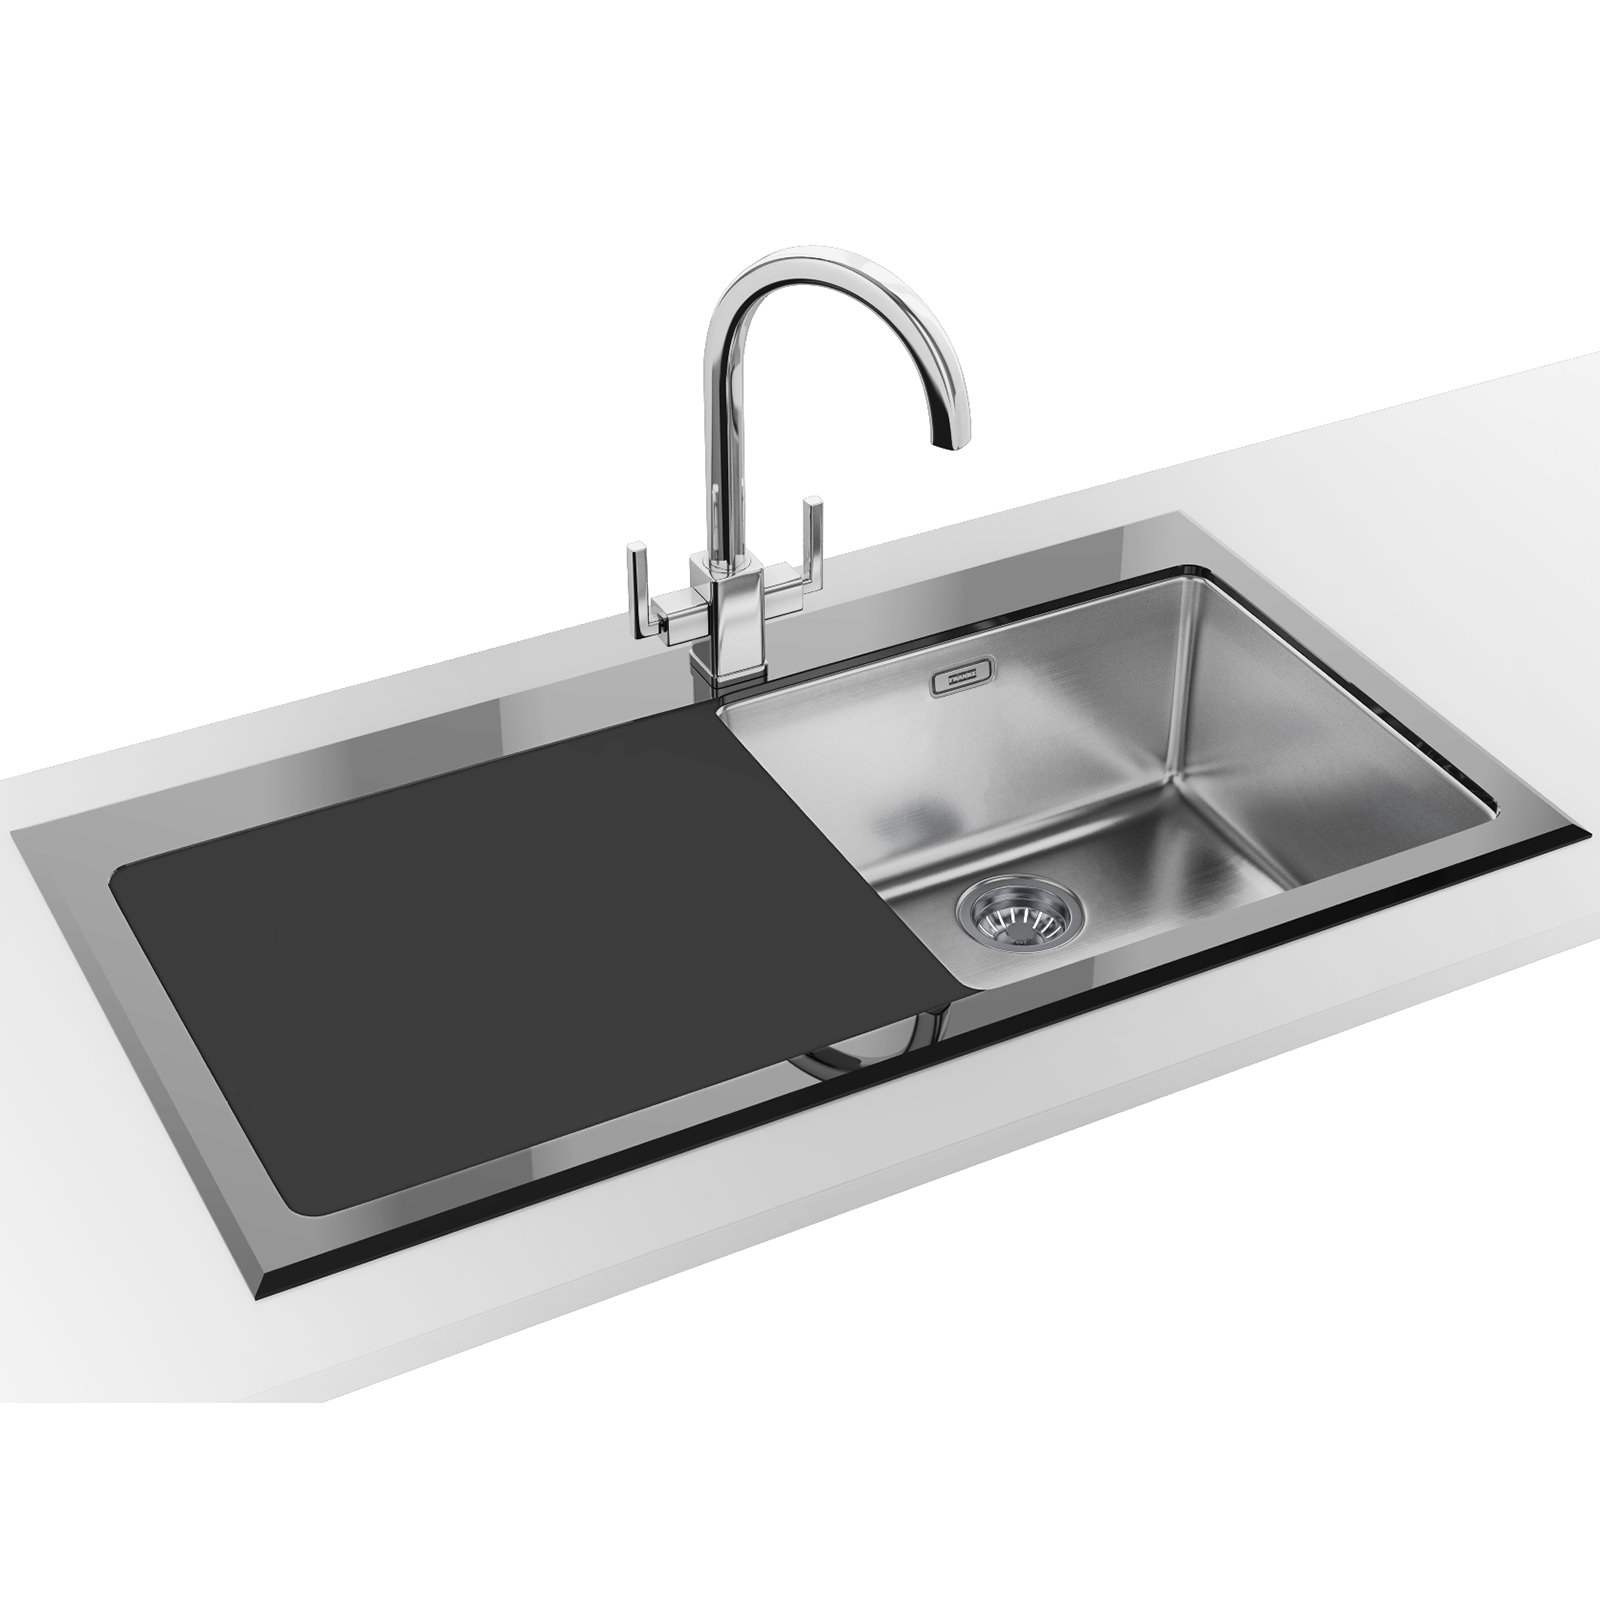 Franke Black Glass Sink : Franke Kubus Designer Pack KBV 611 Black Glass Inset Sink And Tap ...